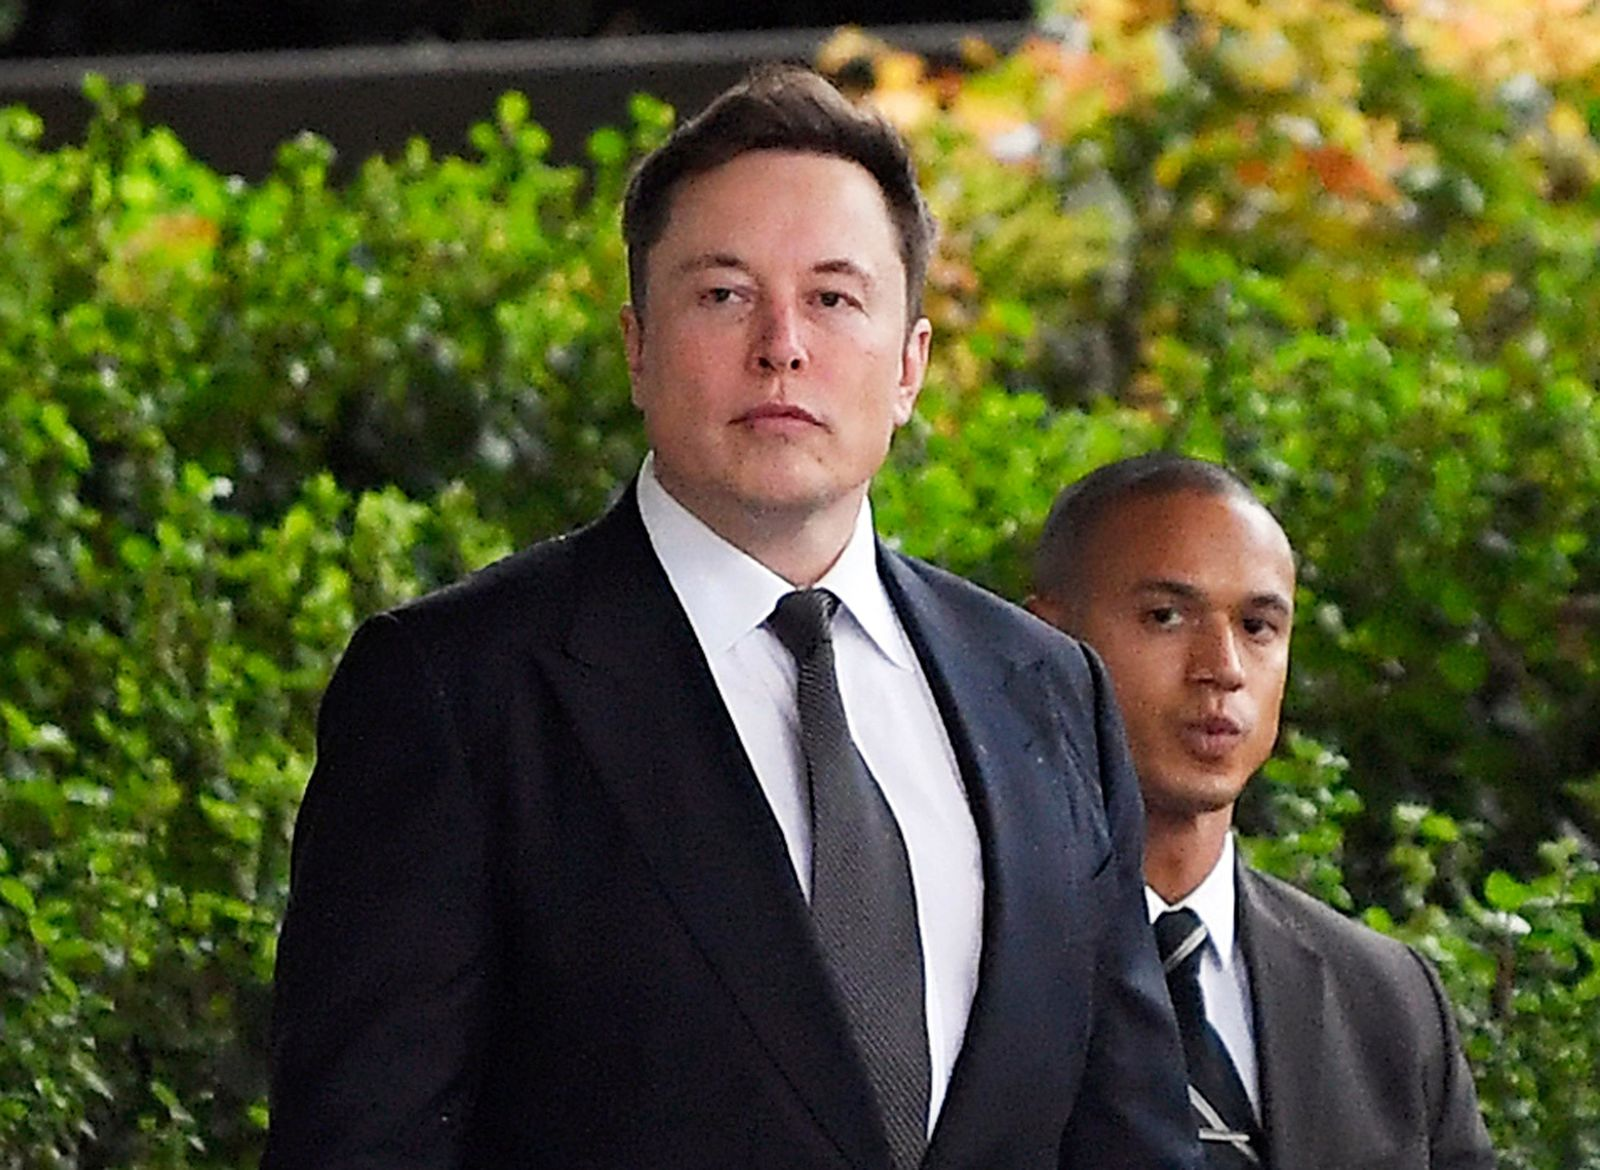 "FILE - In this Wednesday, Dec. 4, 2019 file photo, Tesla CEO Elon Musk arrives at U.S. District Court in Los Angeles. Musk did not defame a British cave explorer when he called him ""pedo guy"" in an angry tweet, a Los Angeles jury found Friday, Dec. 6, 2019. (AP Photo/Mark J. Terrill, File)"